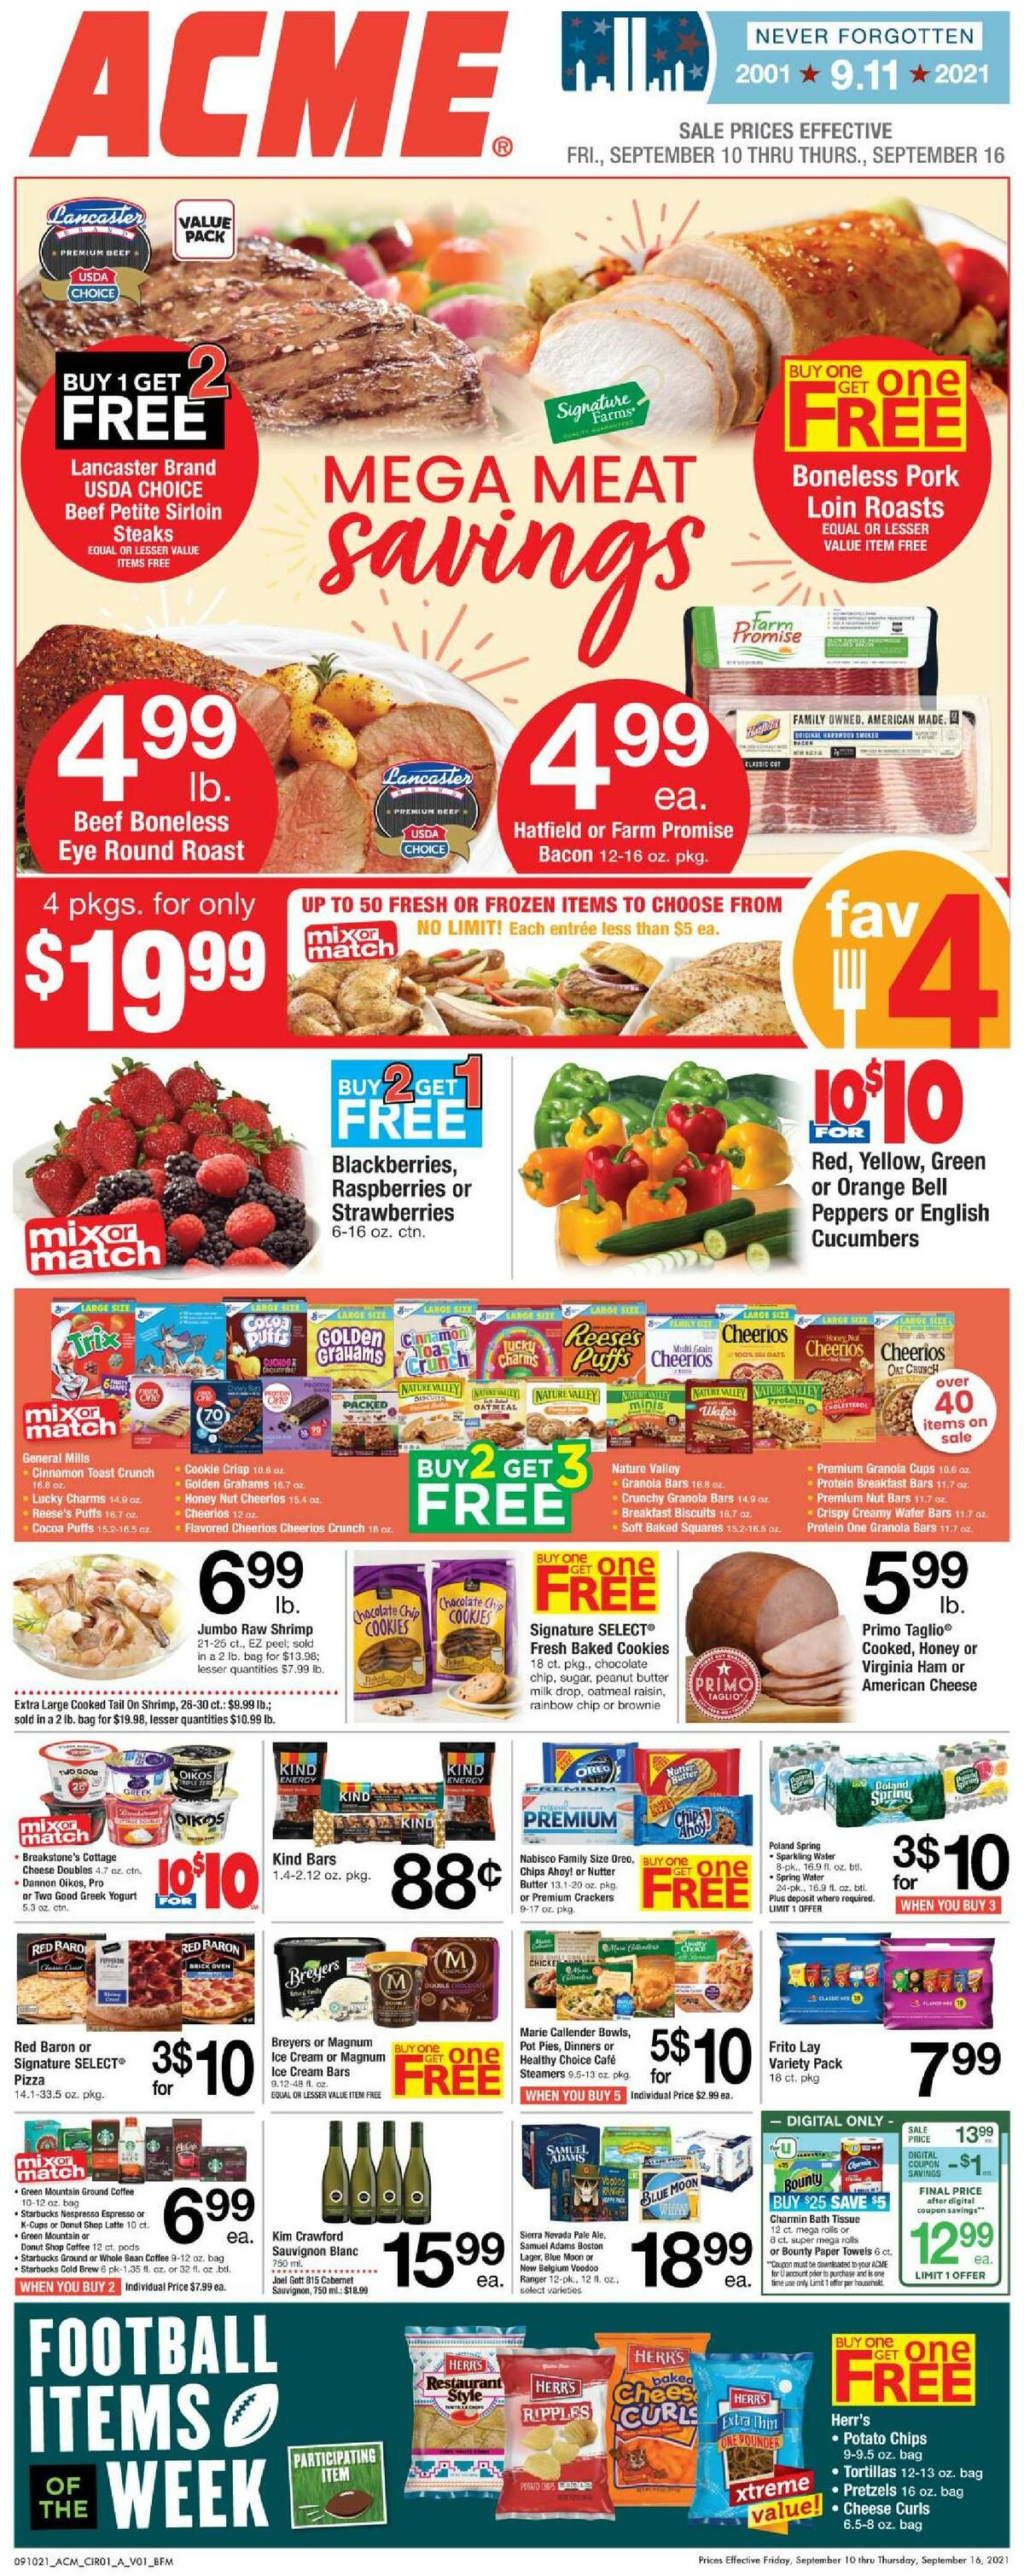 ACME Markets Weekly Ad from September 10